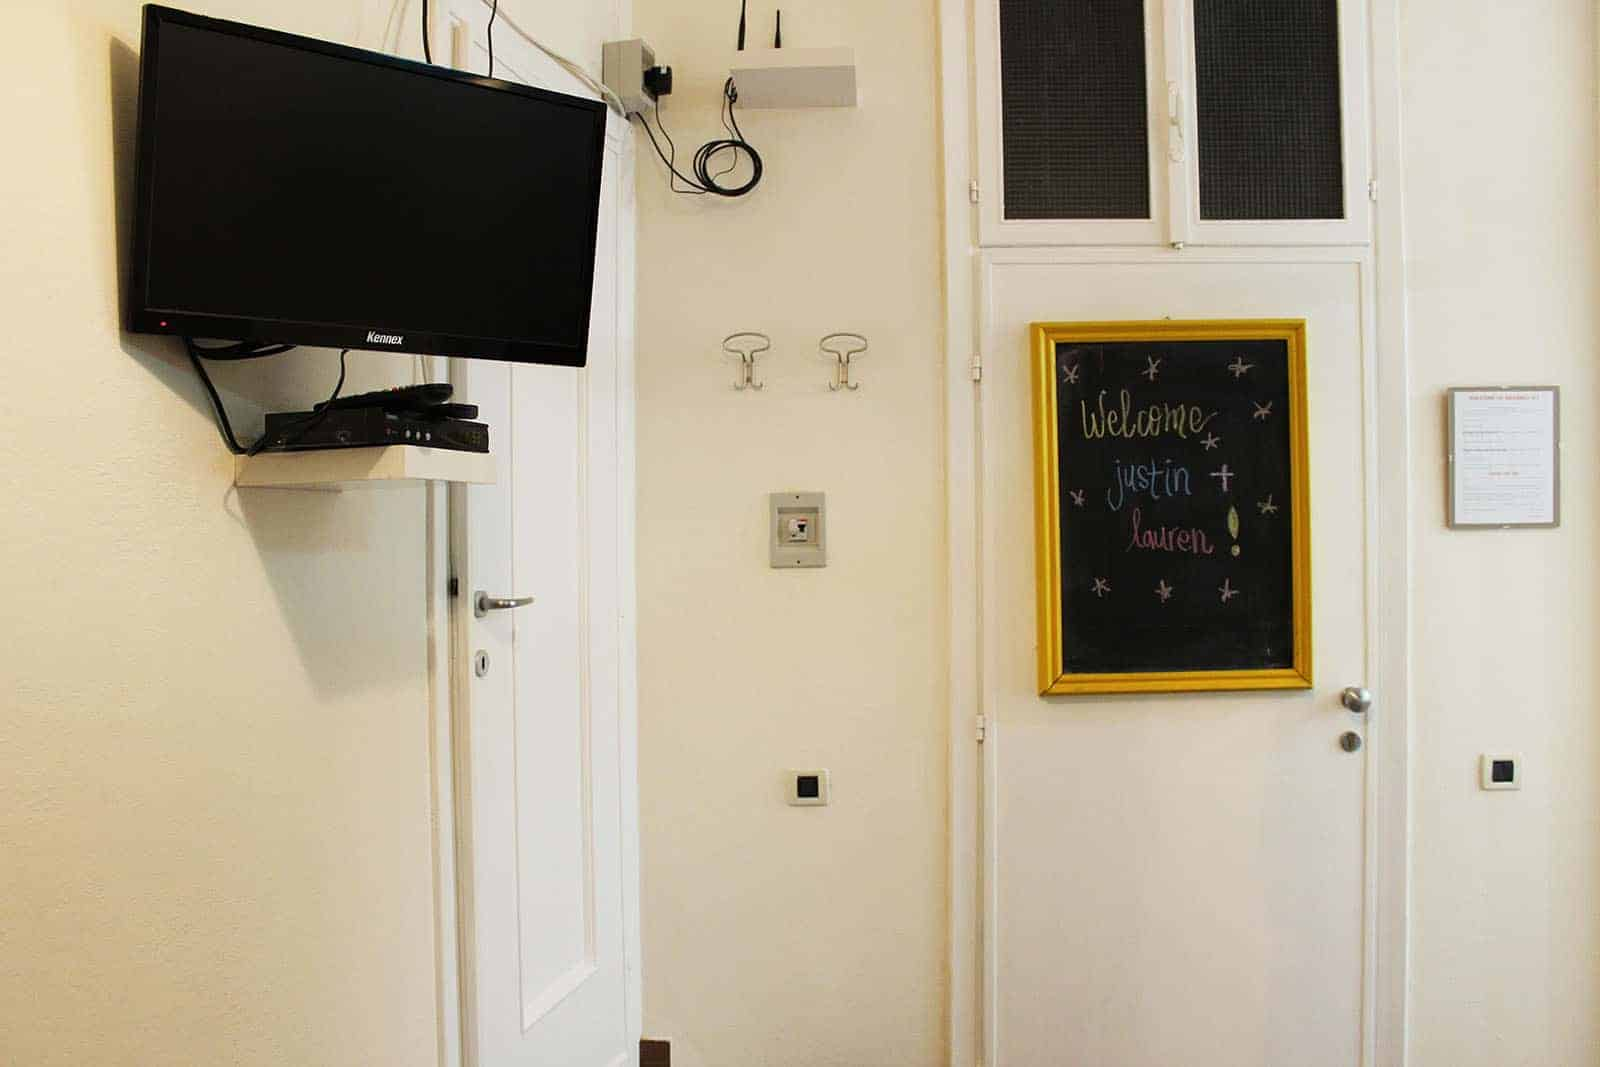 Where to stay in Cinque Terre: Gramsci 31 apartment in Riomaggiore